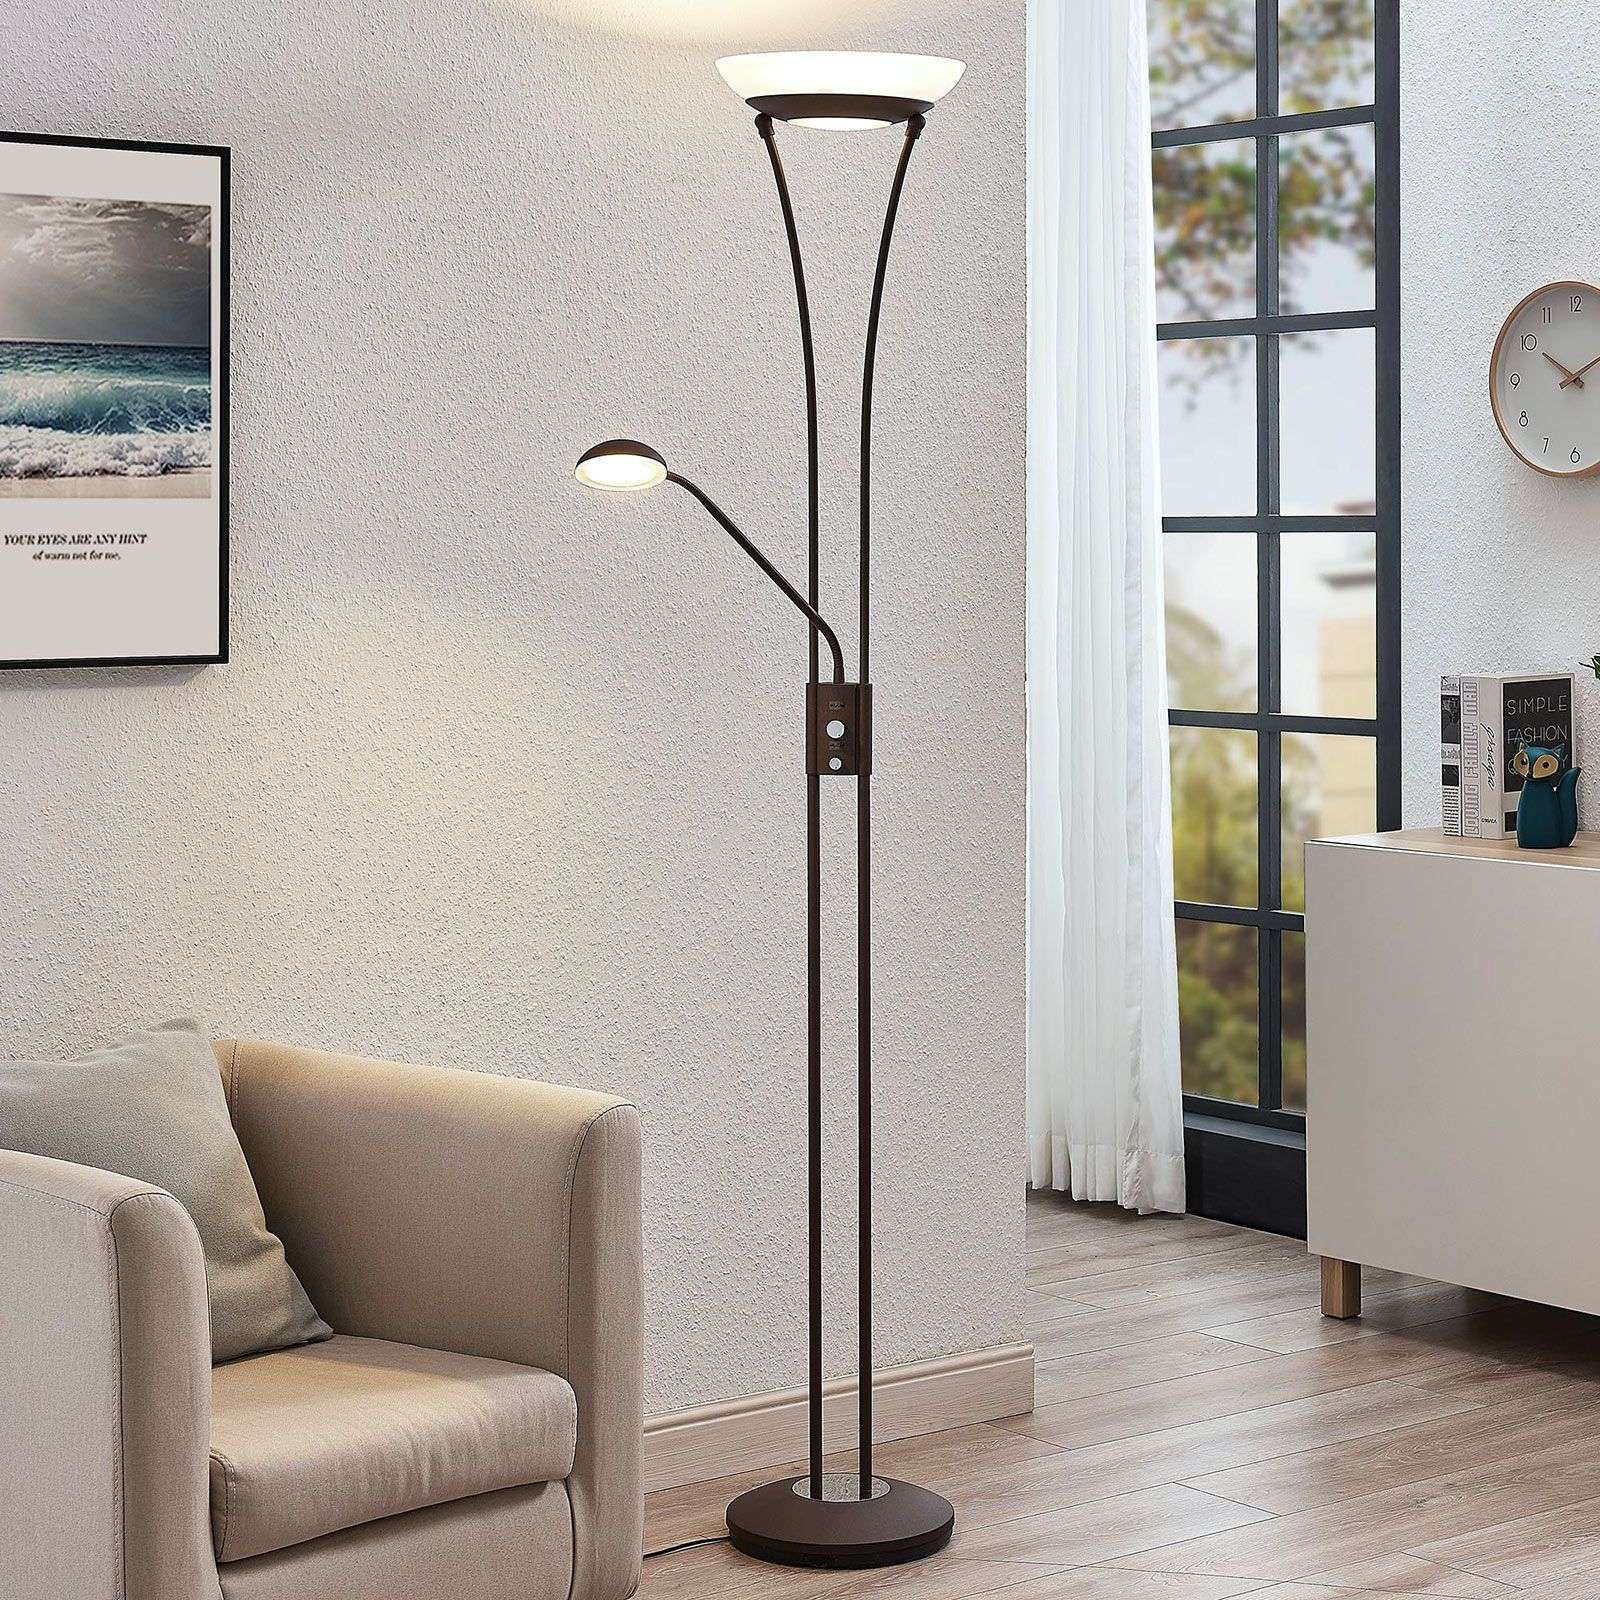 LED uplighter Amadou m. leeslamp, roest